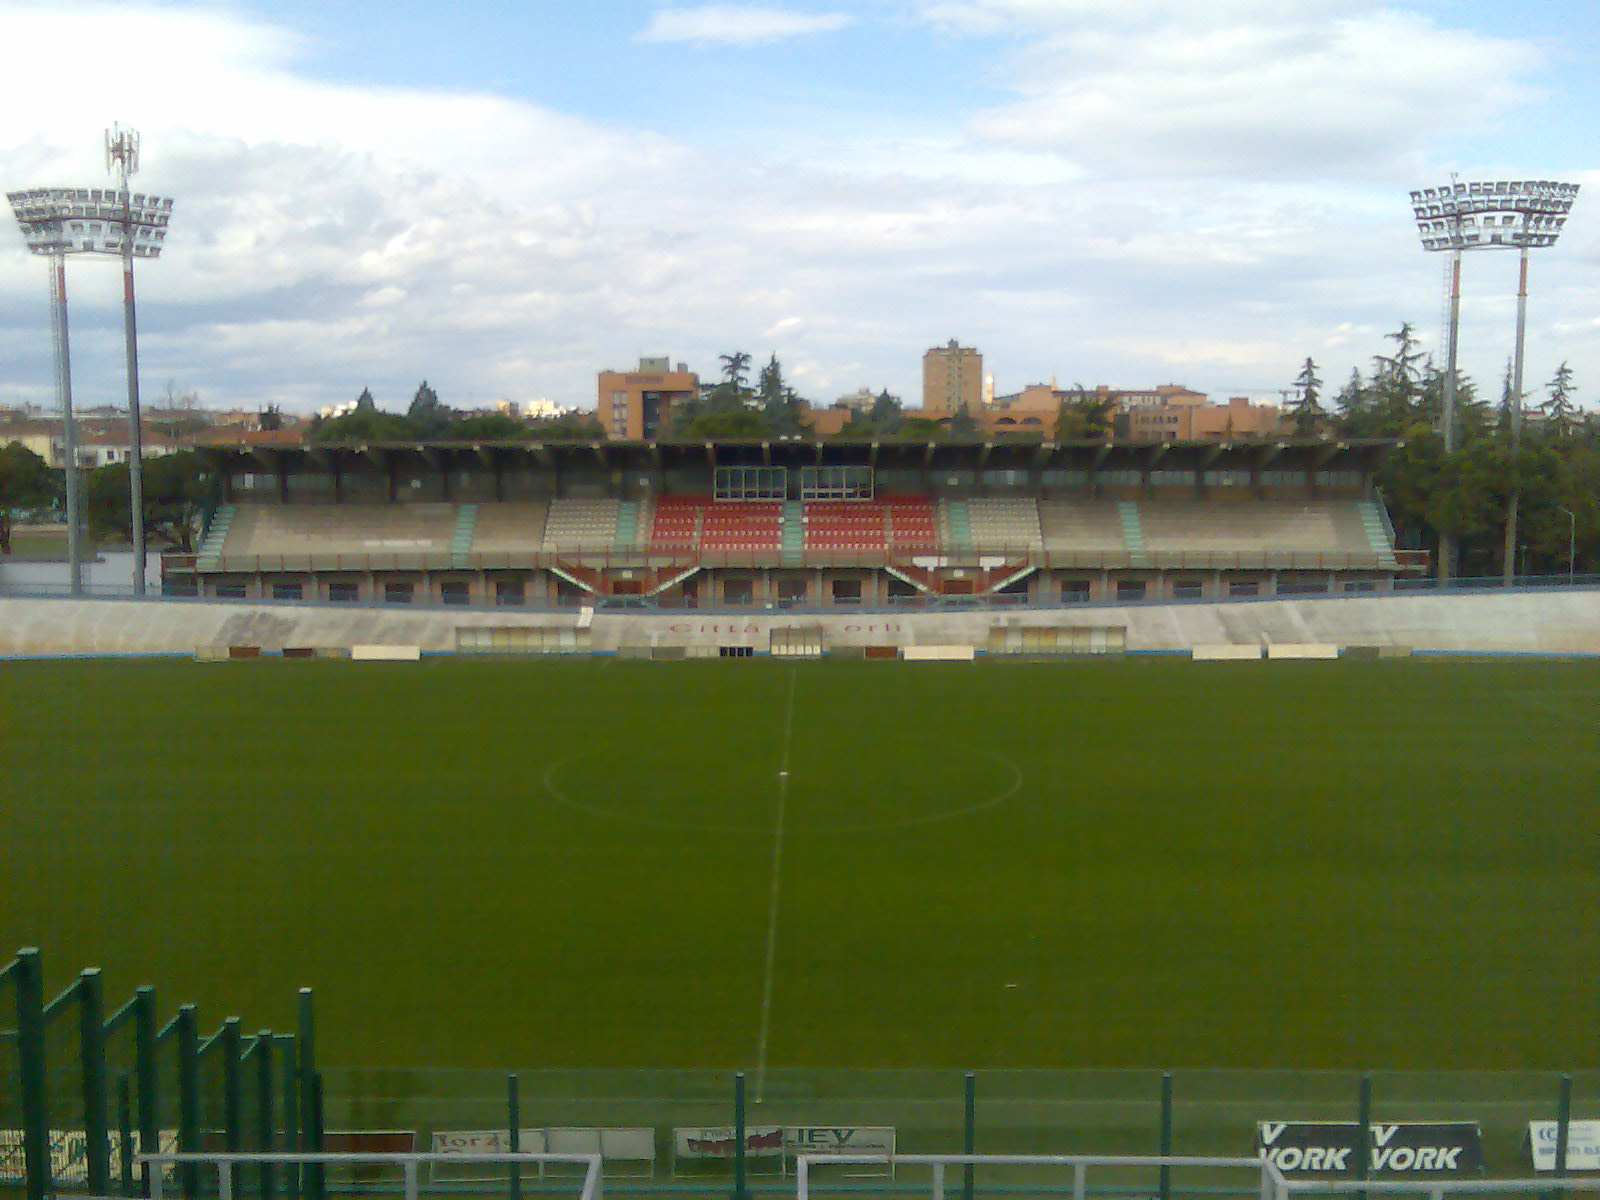 https://upload.wikimedia.org/wikipedia/commons/d/df/2008-03-10_Stadio_Tullo_Morgagni_%28Forl%C3%AC%29.jpg